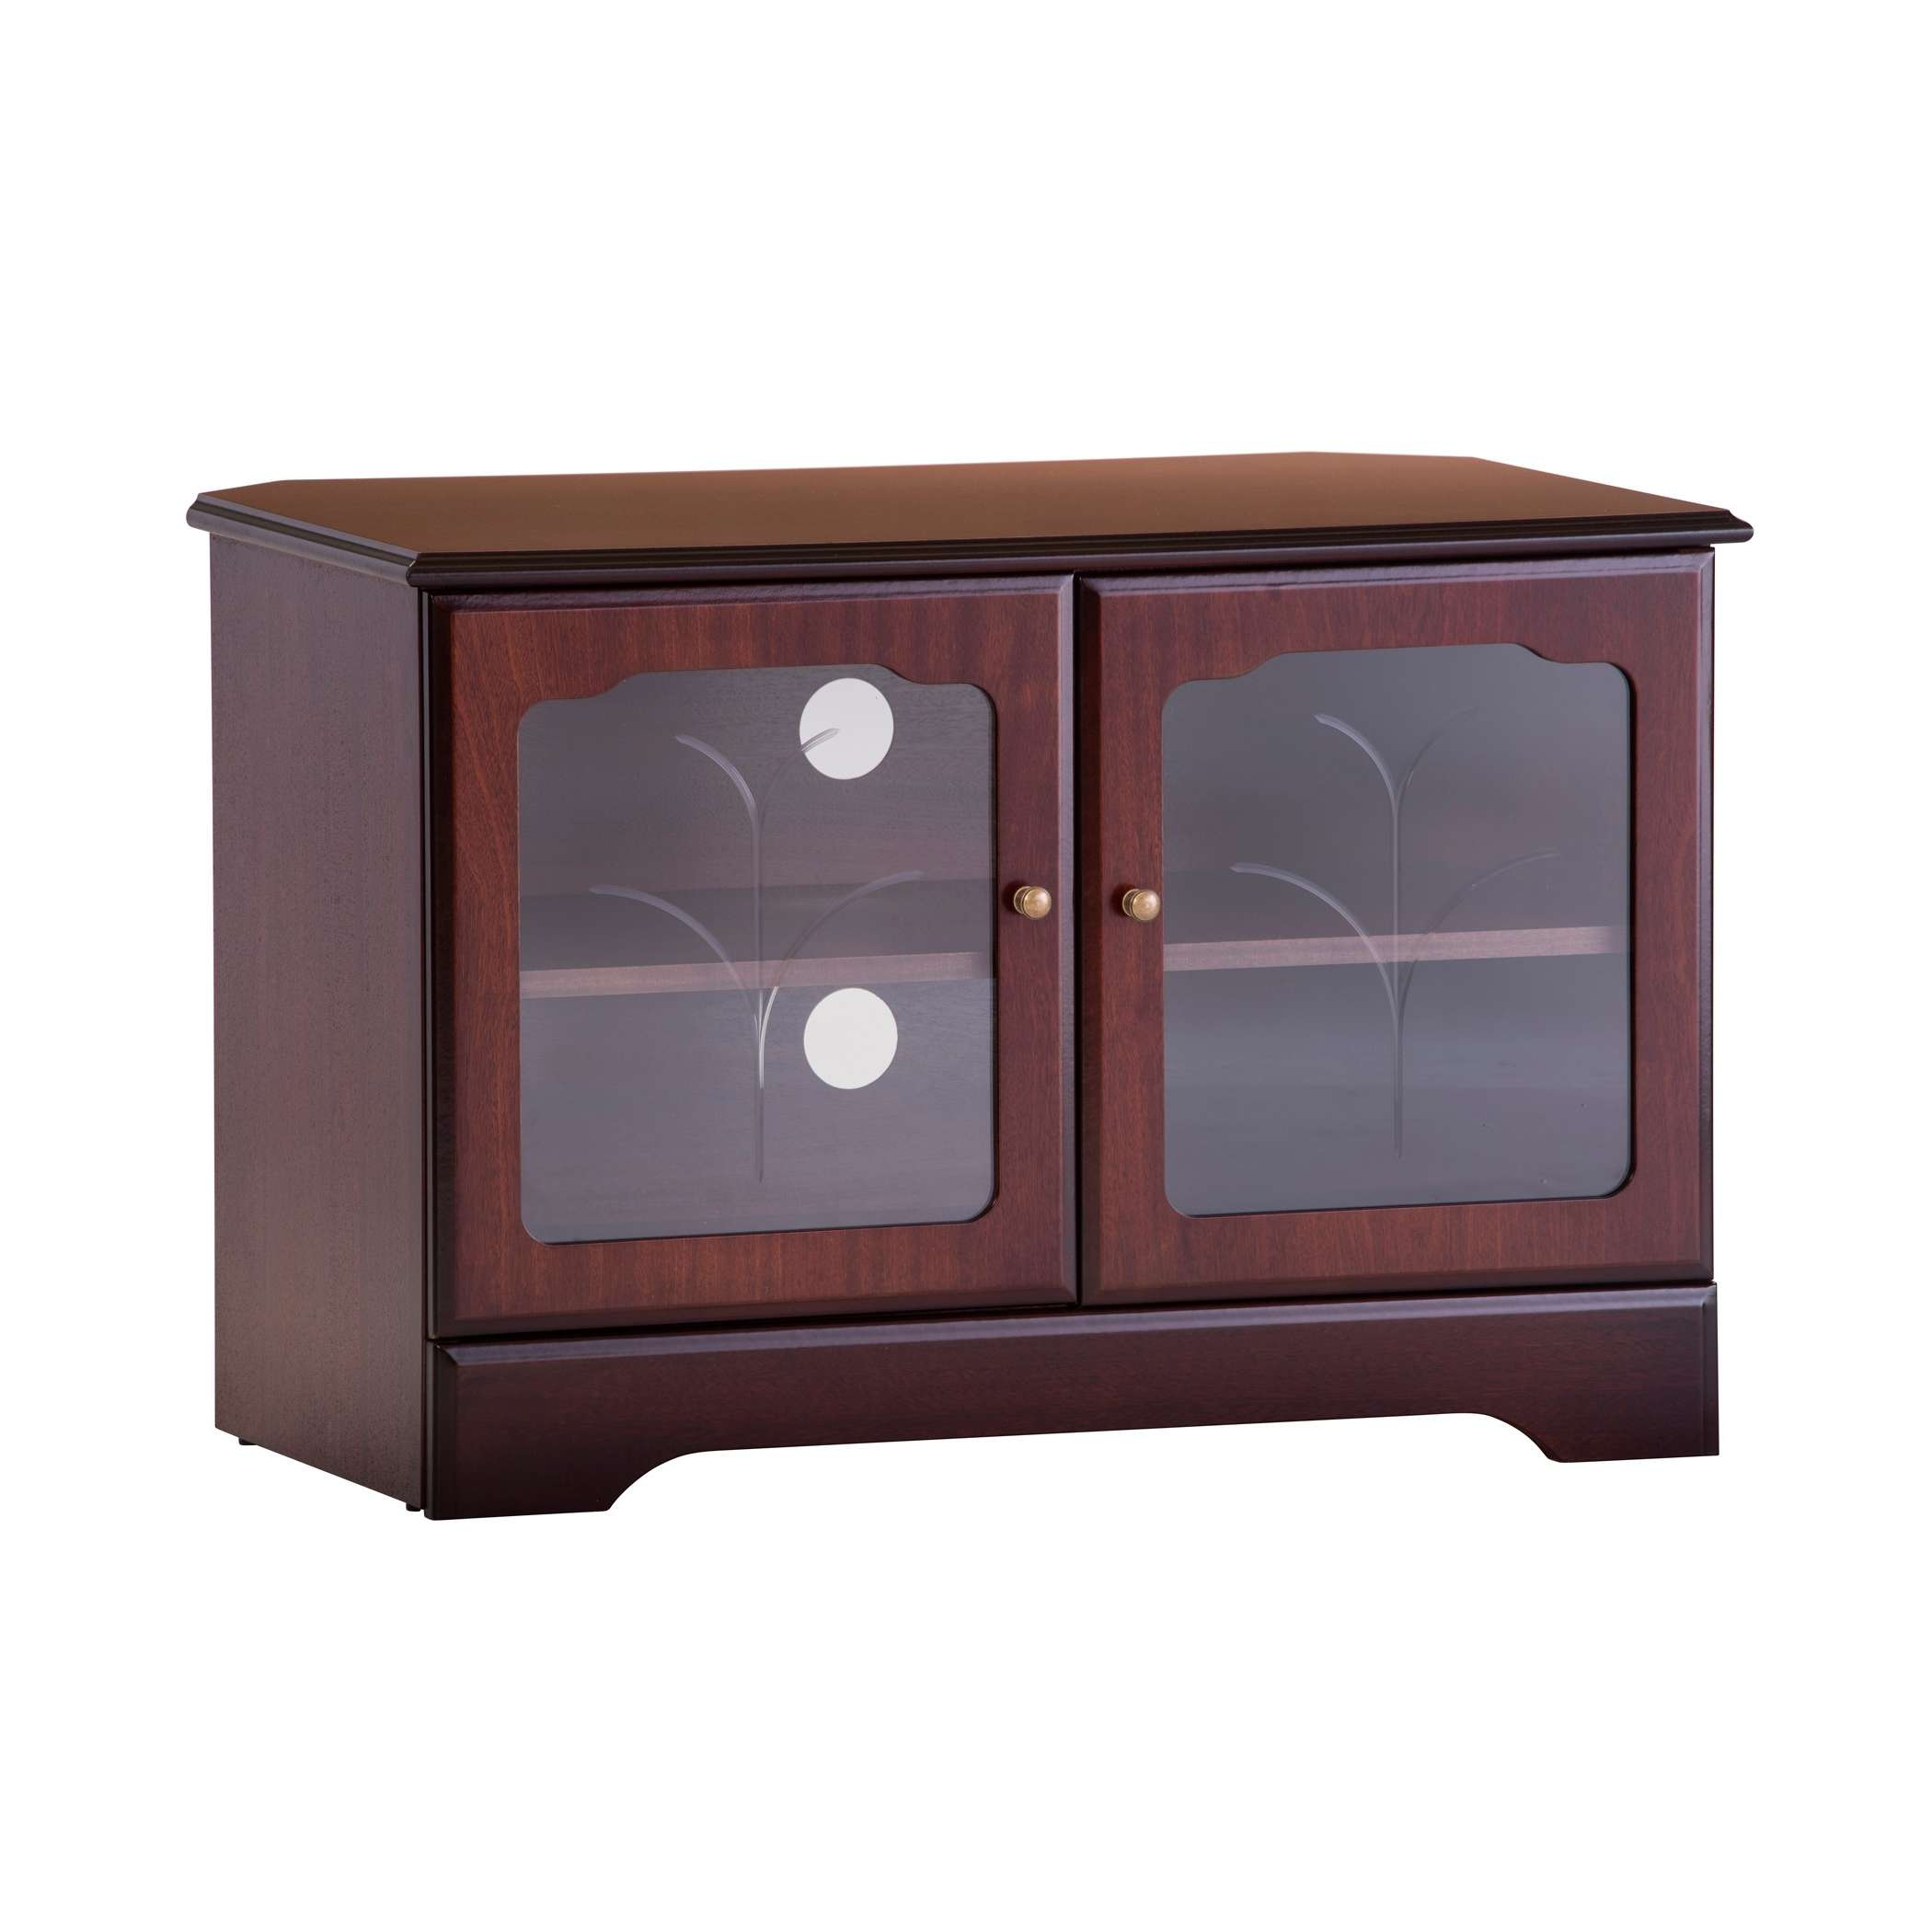 Corner Tv Stand In Mahogany Or Teak | Gola Furniture Uk Regarding Mahogany Corner Tv Cabinets (View 5 of 20)